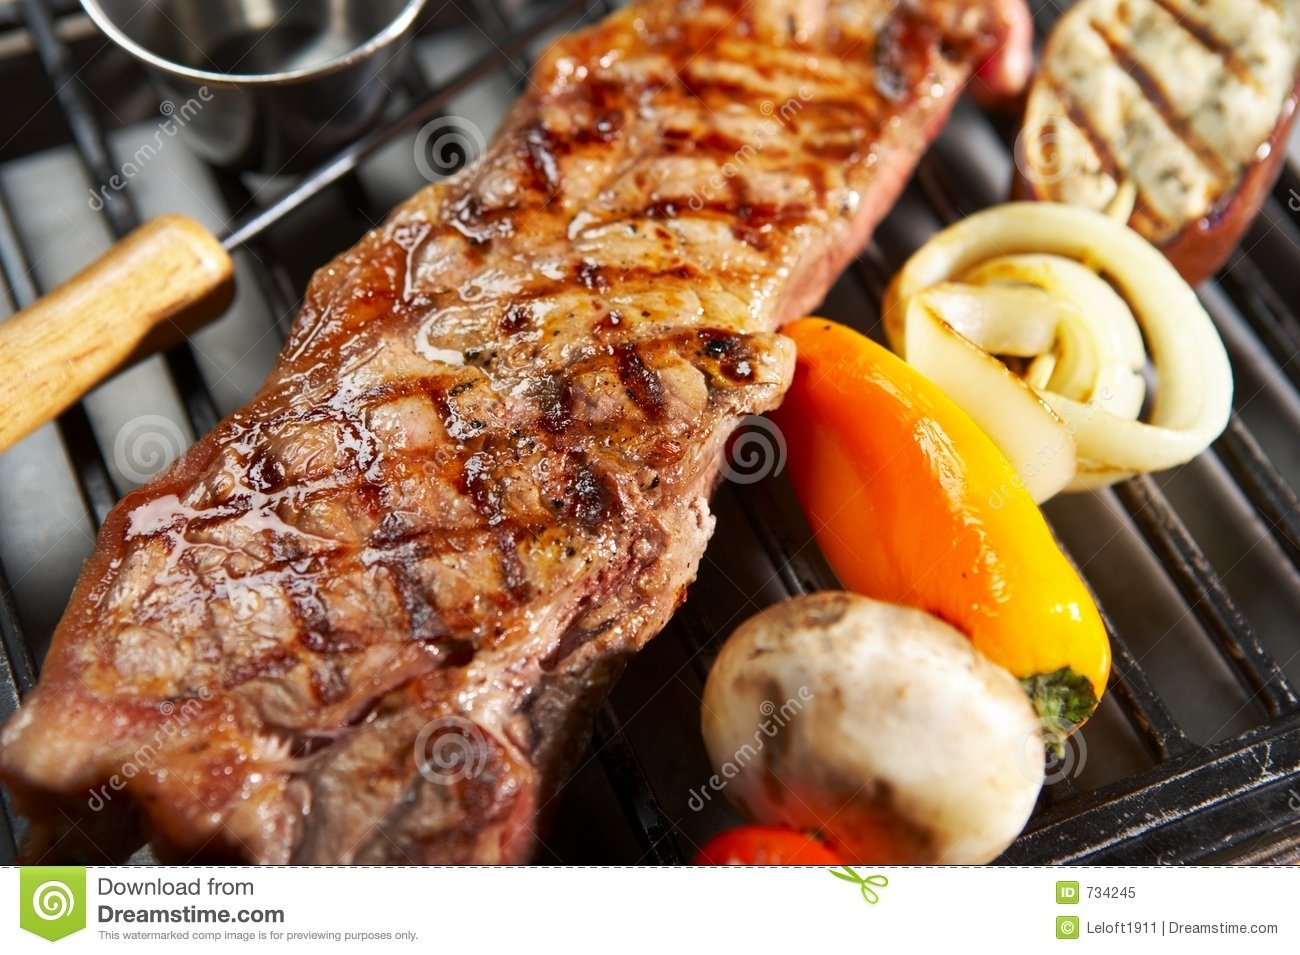 Bbq Stock Photos, Images, & Pictures - 124,595 Images